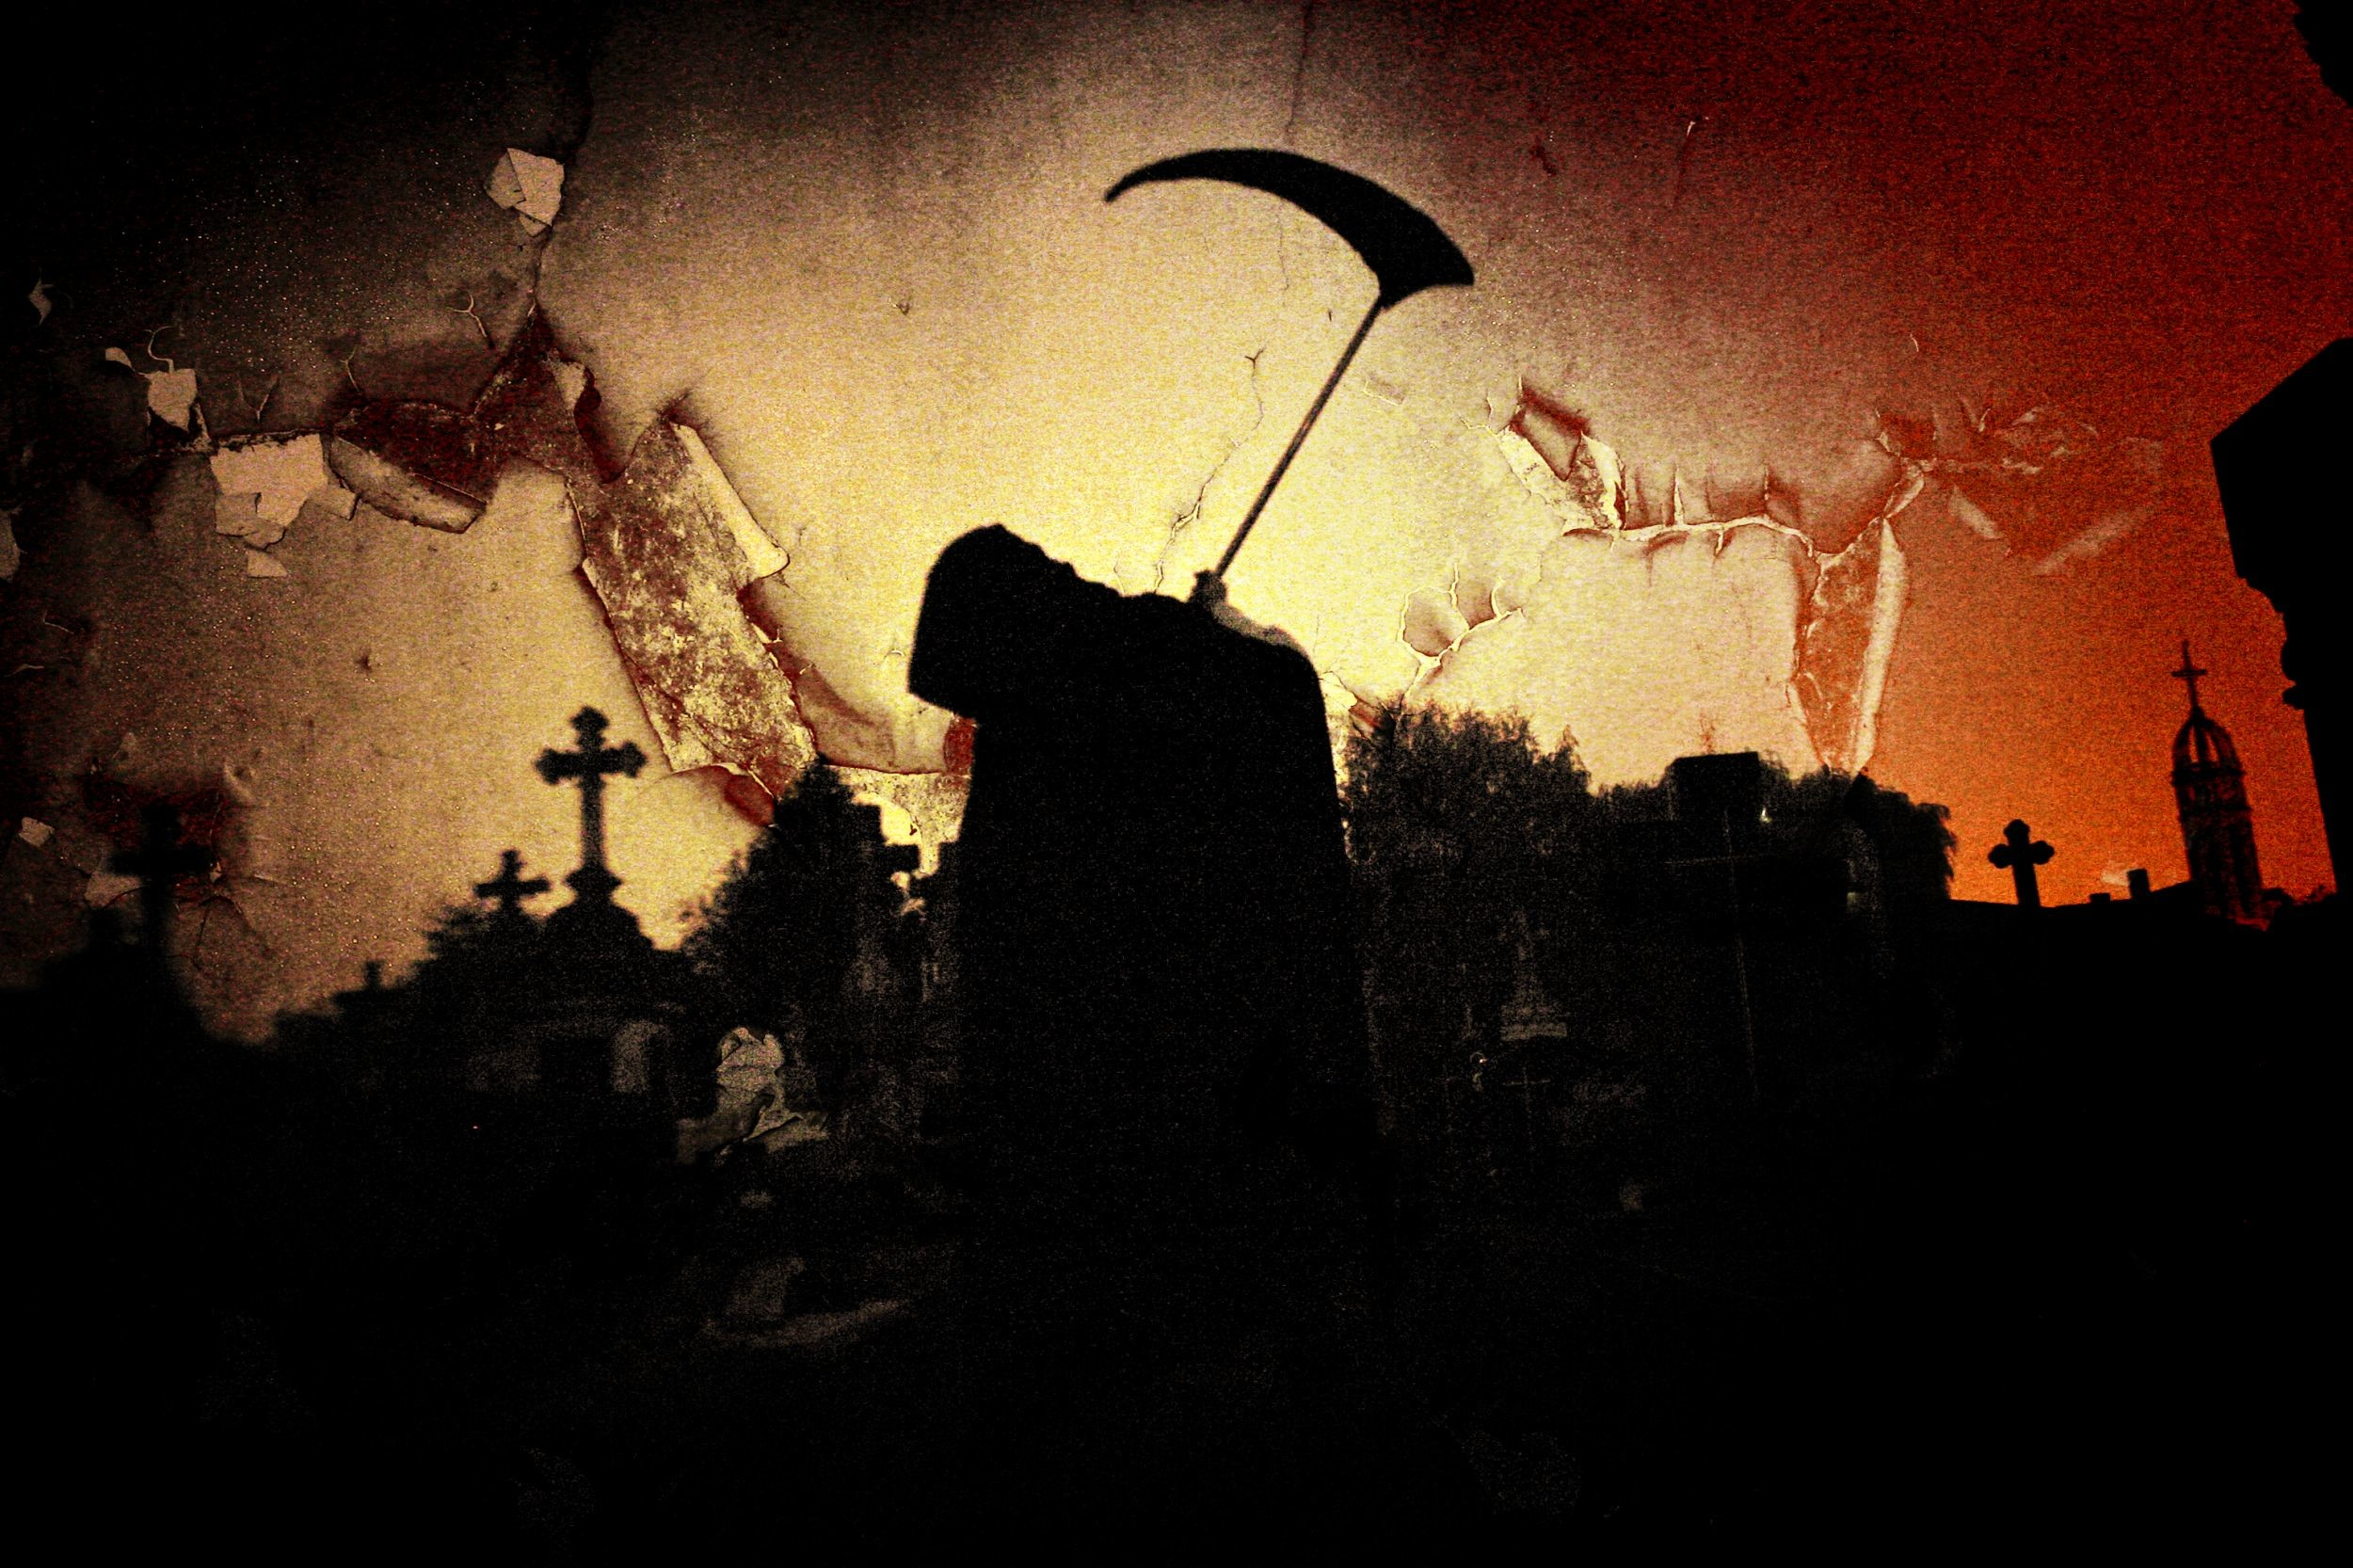 Res: 2500x1666, New Grim Reaper Wallpapers, View Grim Reaper Wallpapers for PC & Mac,  Tablet, Laptop, Mobile